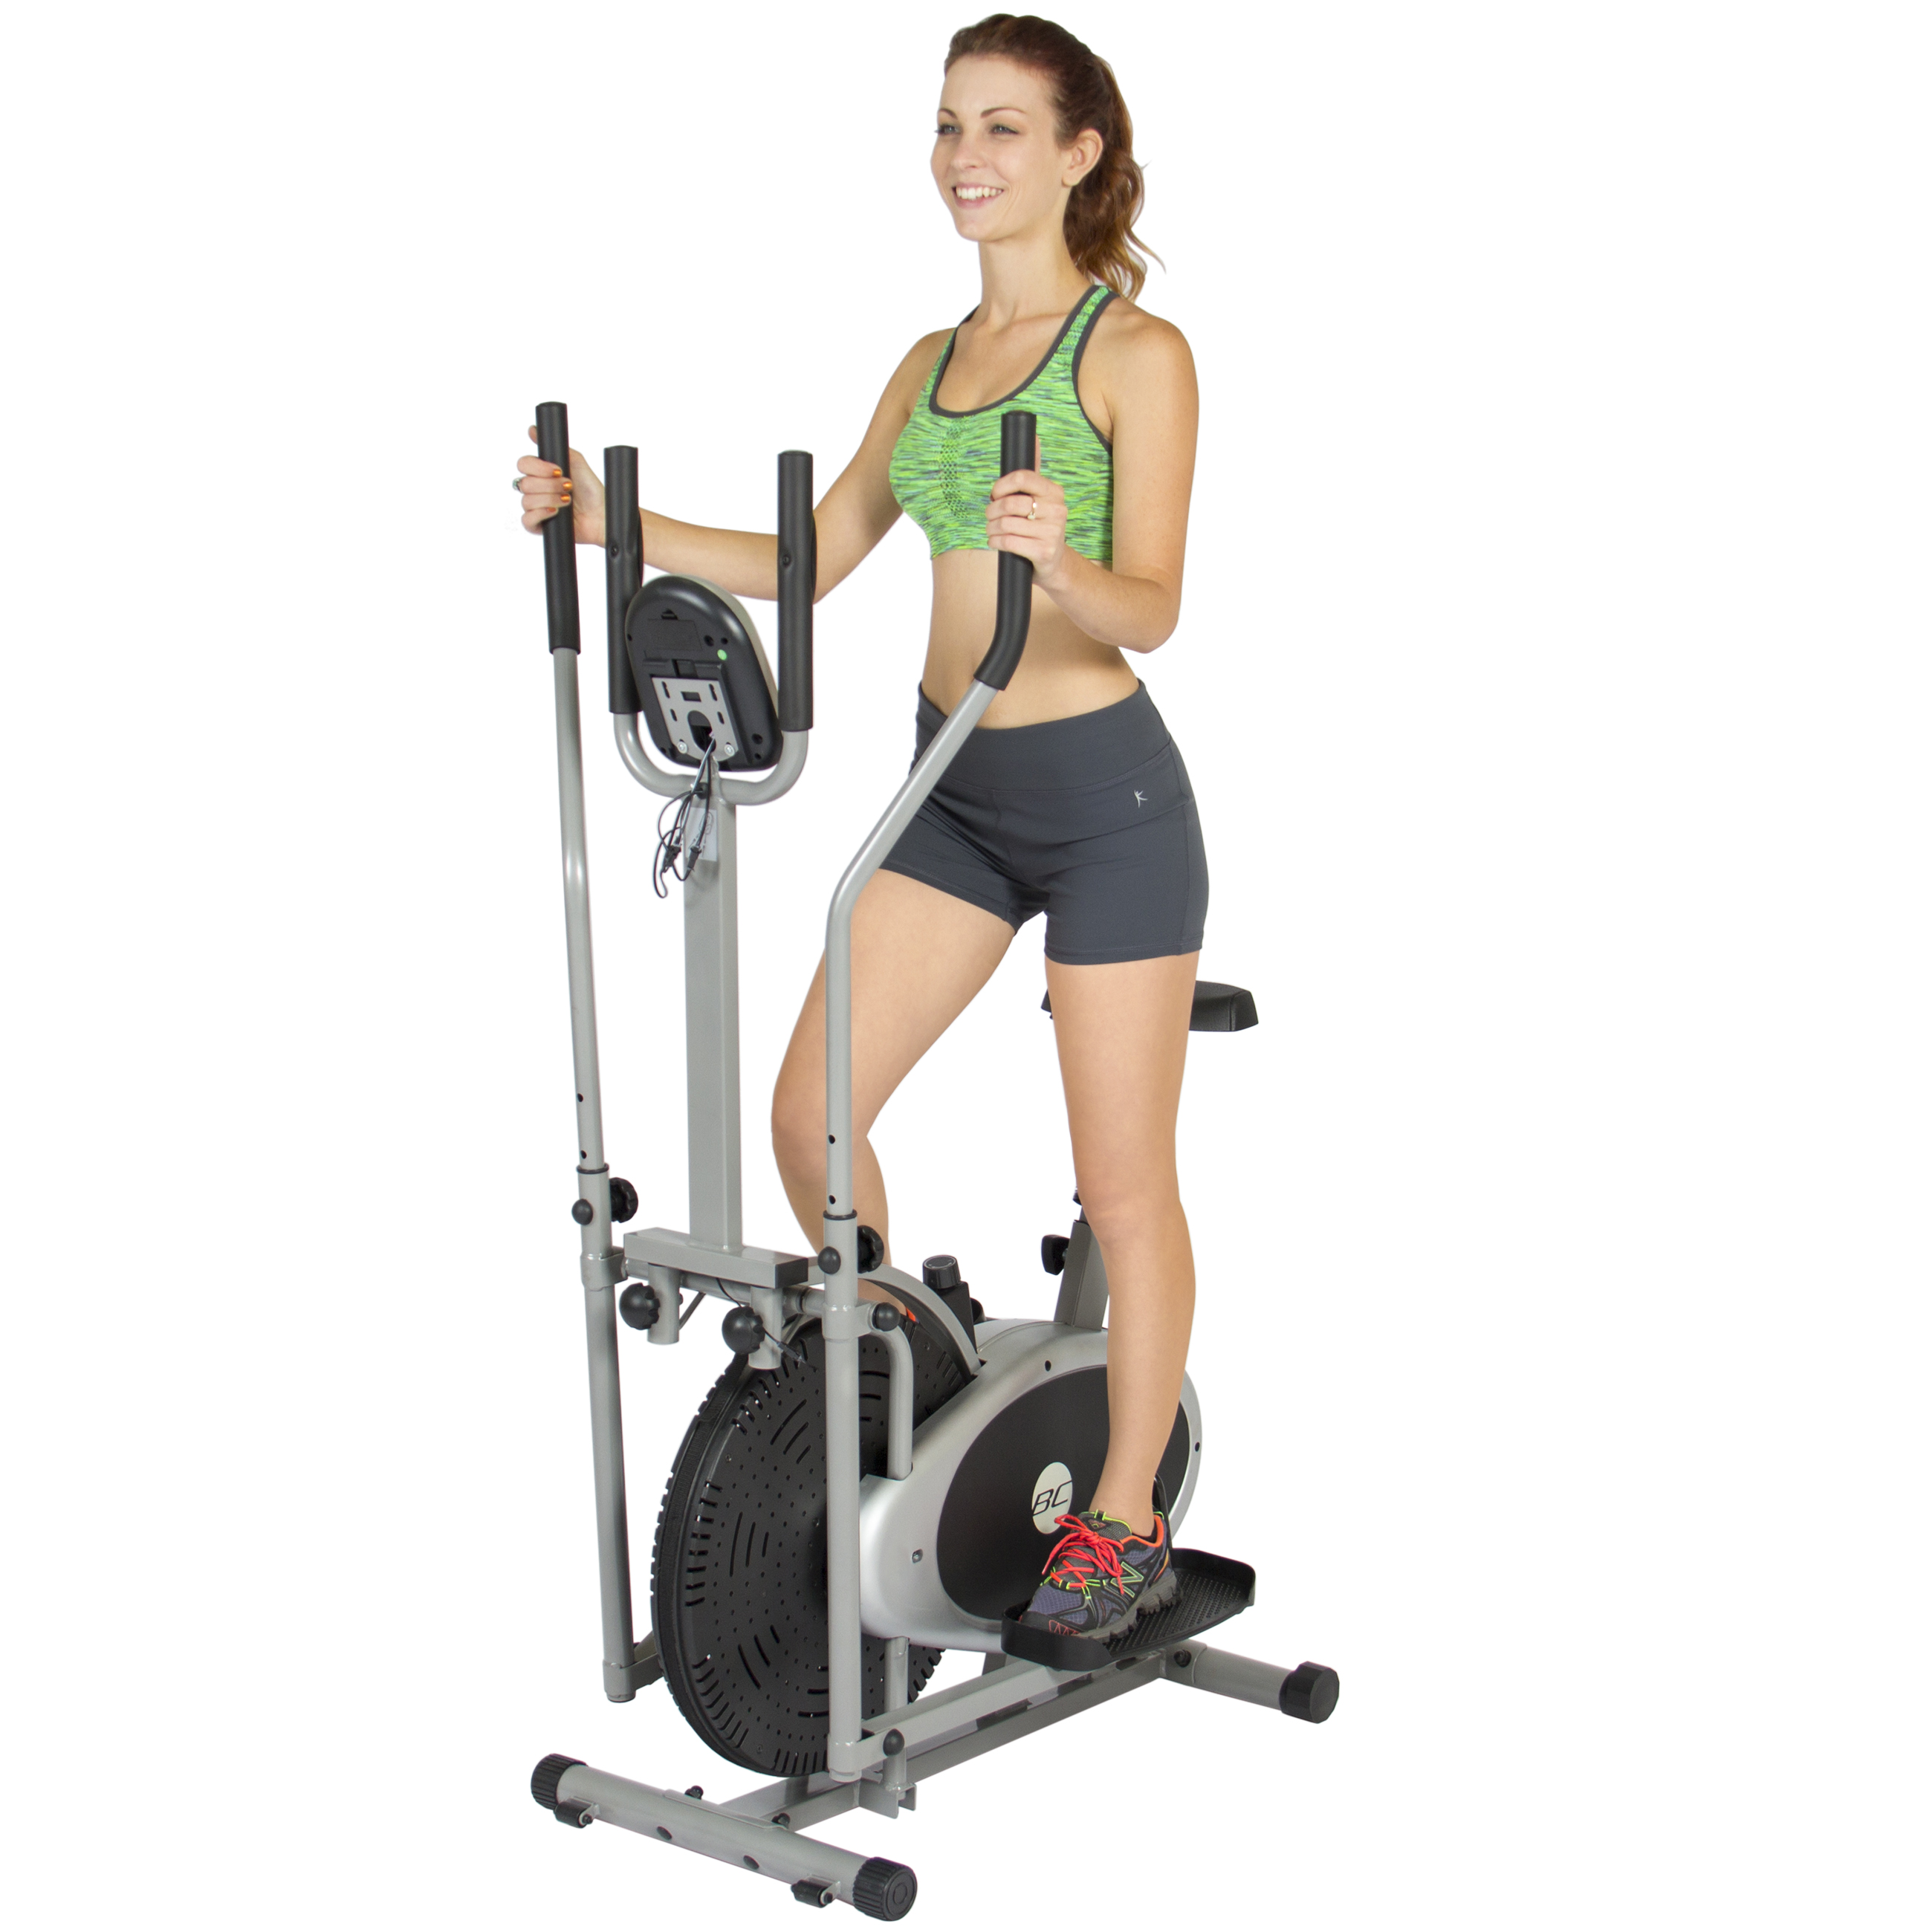 Gazelle Exercise Machine >> Gazelle Freestyle Machine With Workout Dvd And Water Bottle